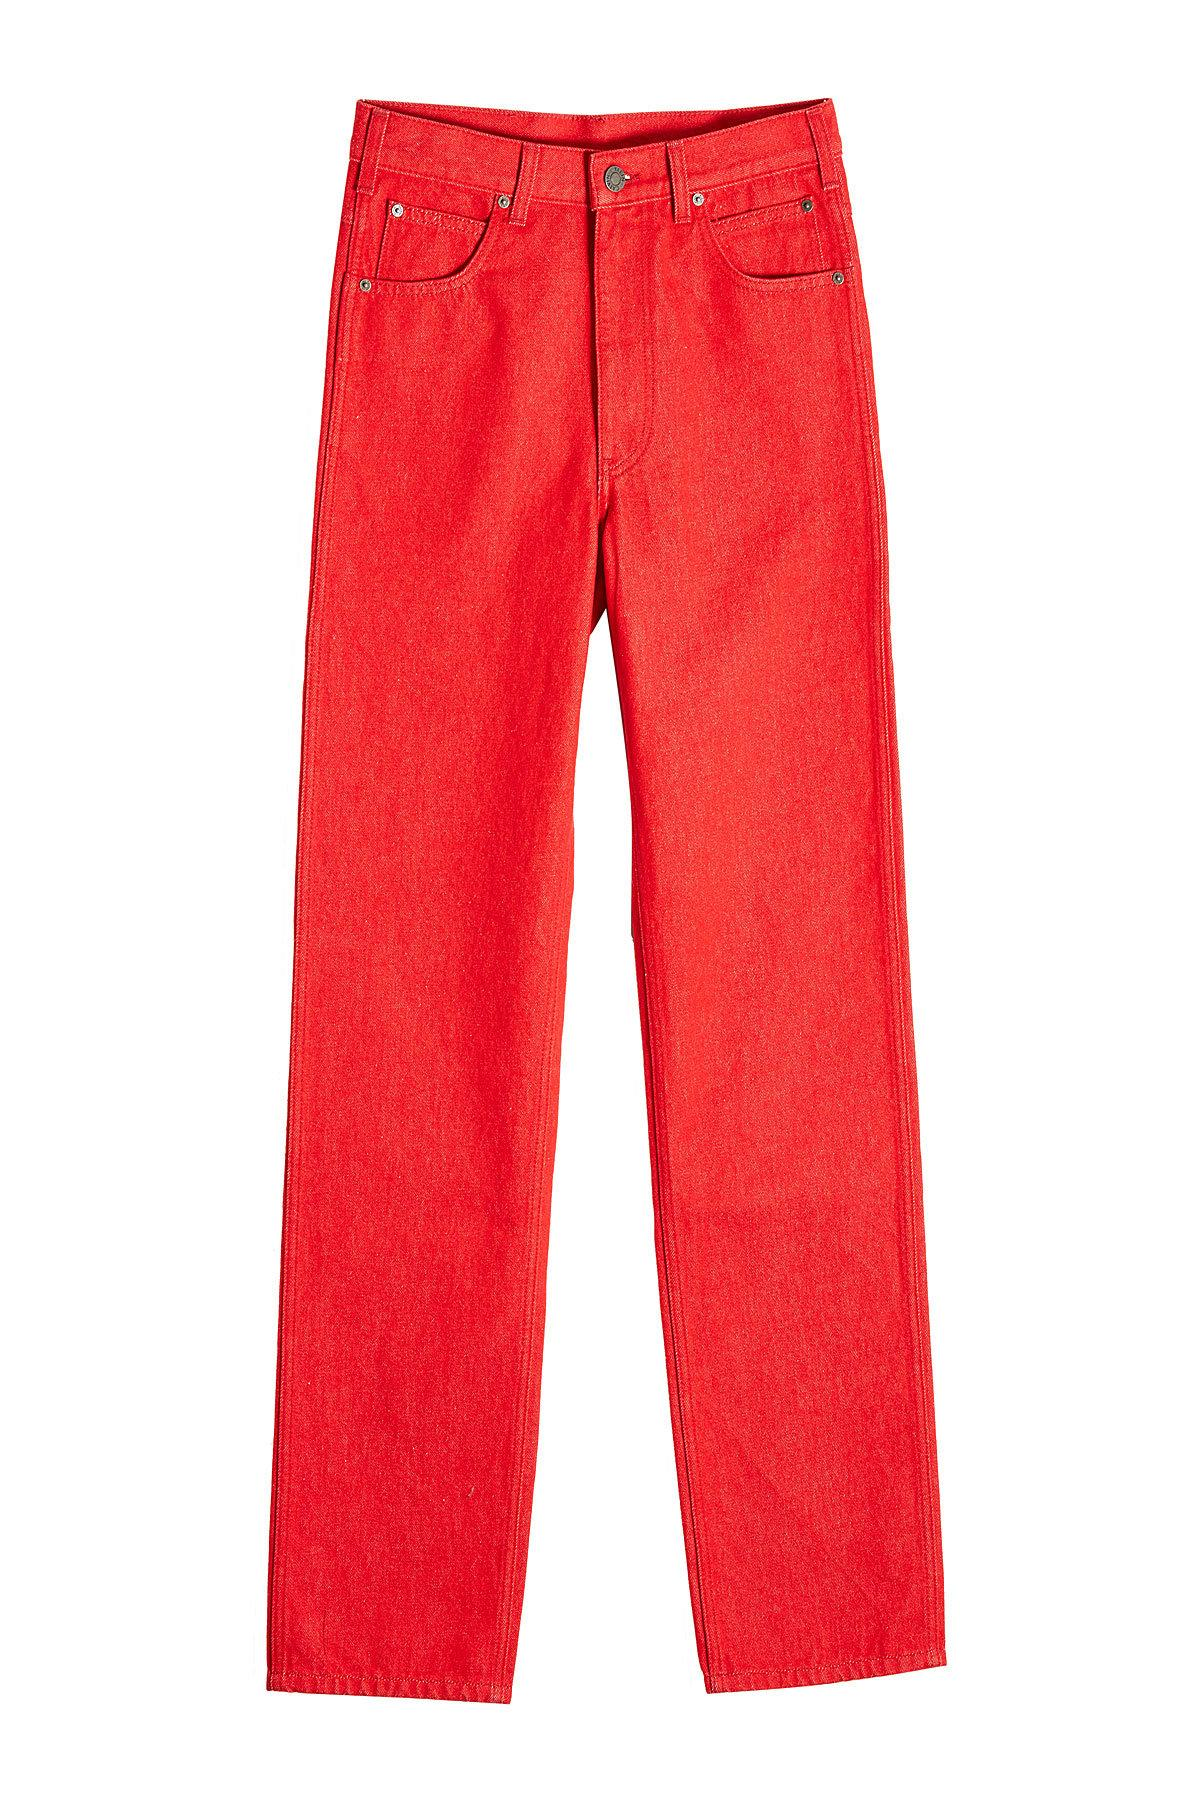 Calvin Klein 205W39Nyc Straight Leg Jeans In Red